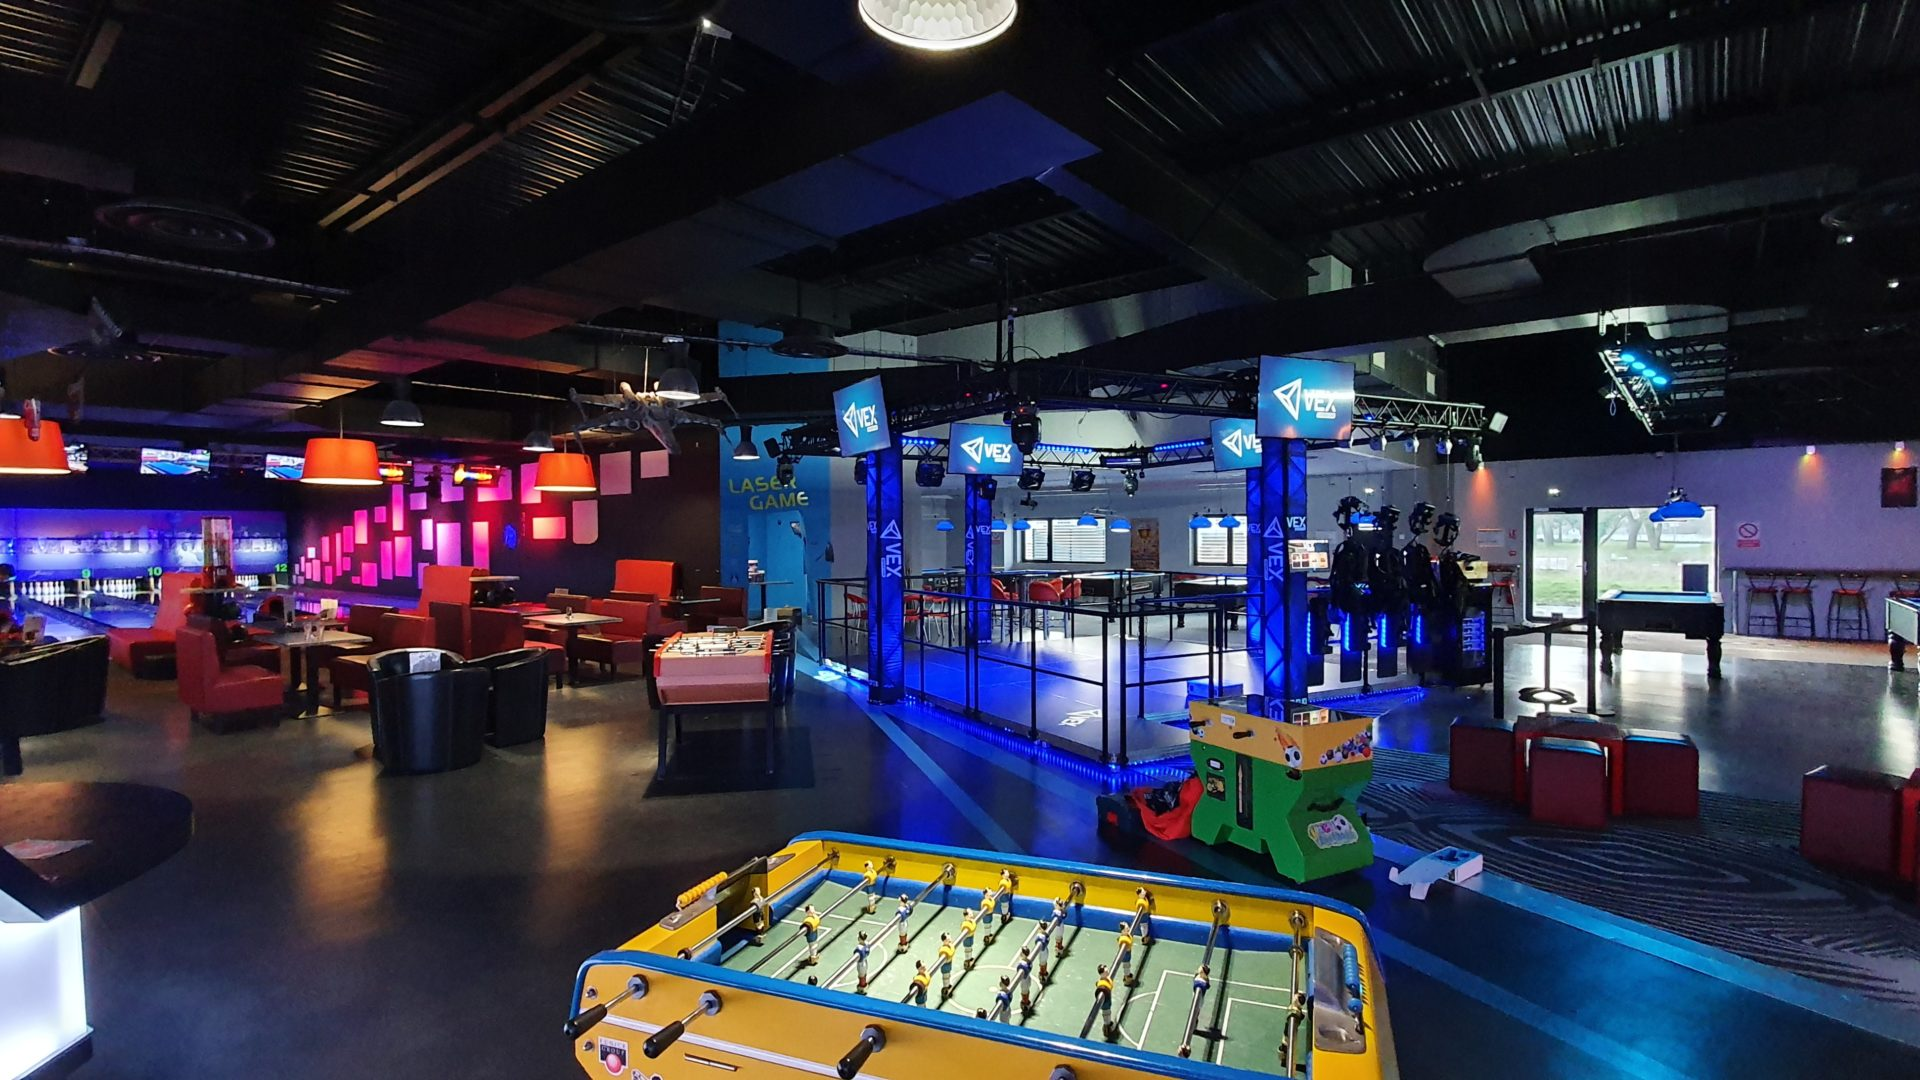 VEX Adventure fits really well in FECs, Bowling and other LBE venues